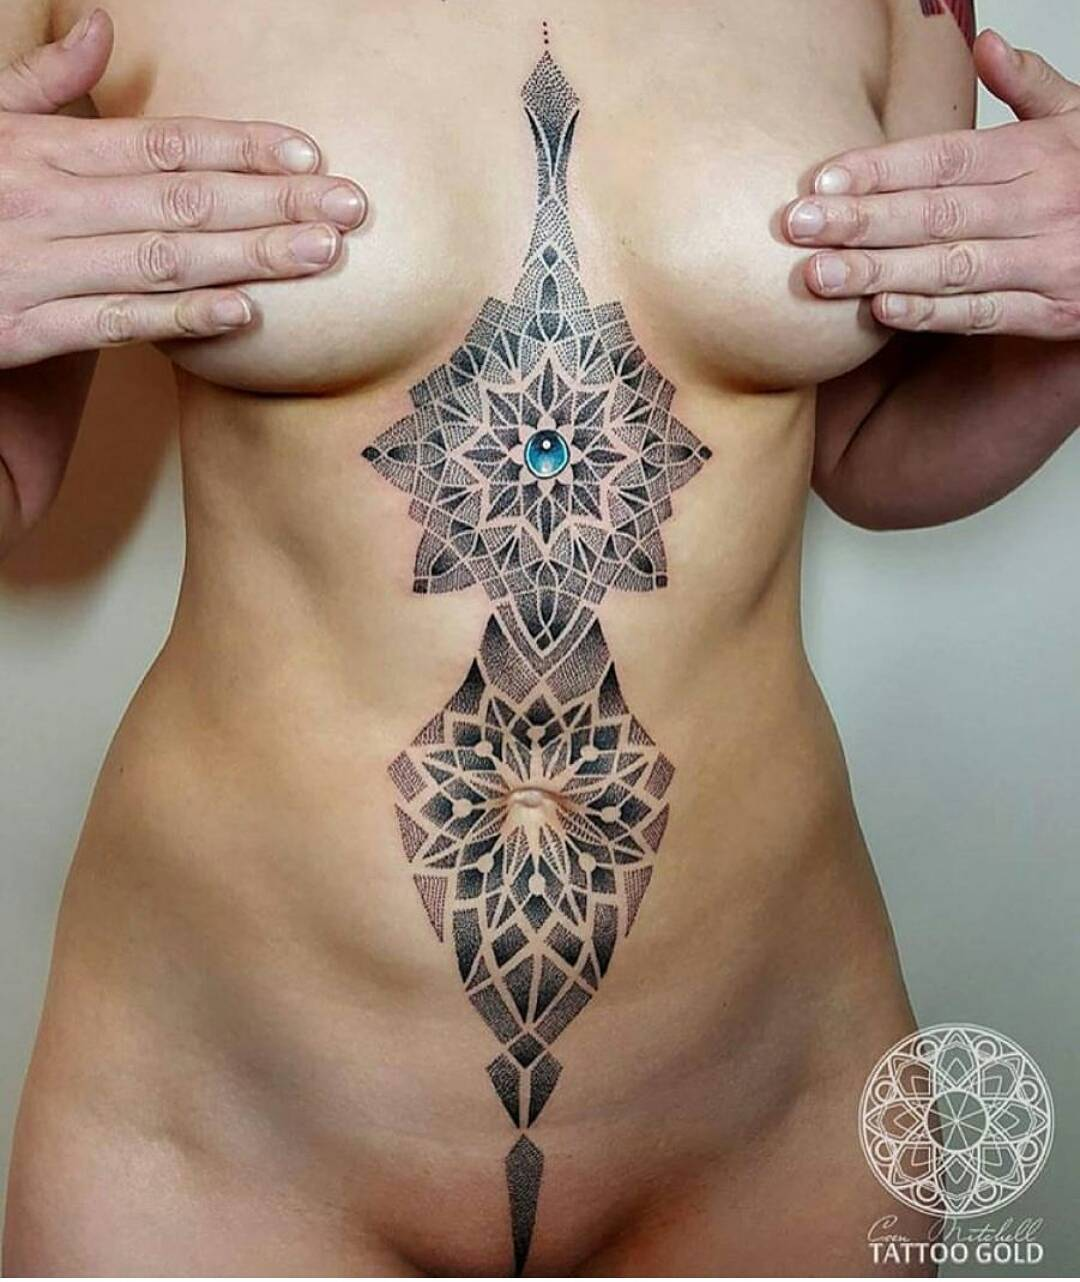 Naked girls tatoo design think, you